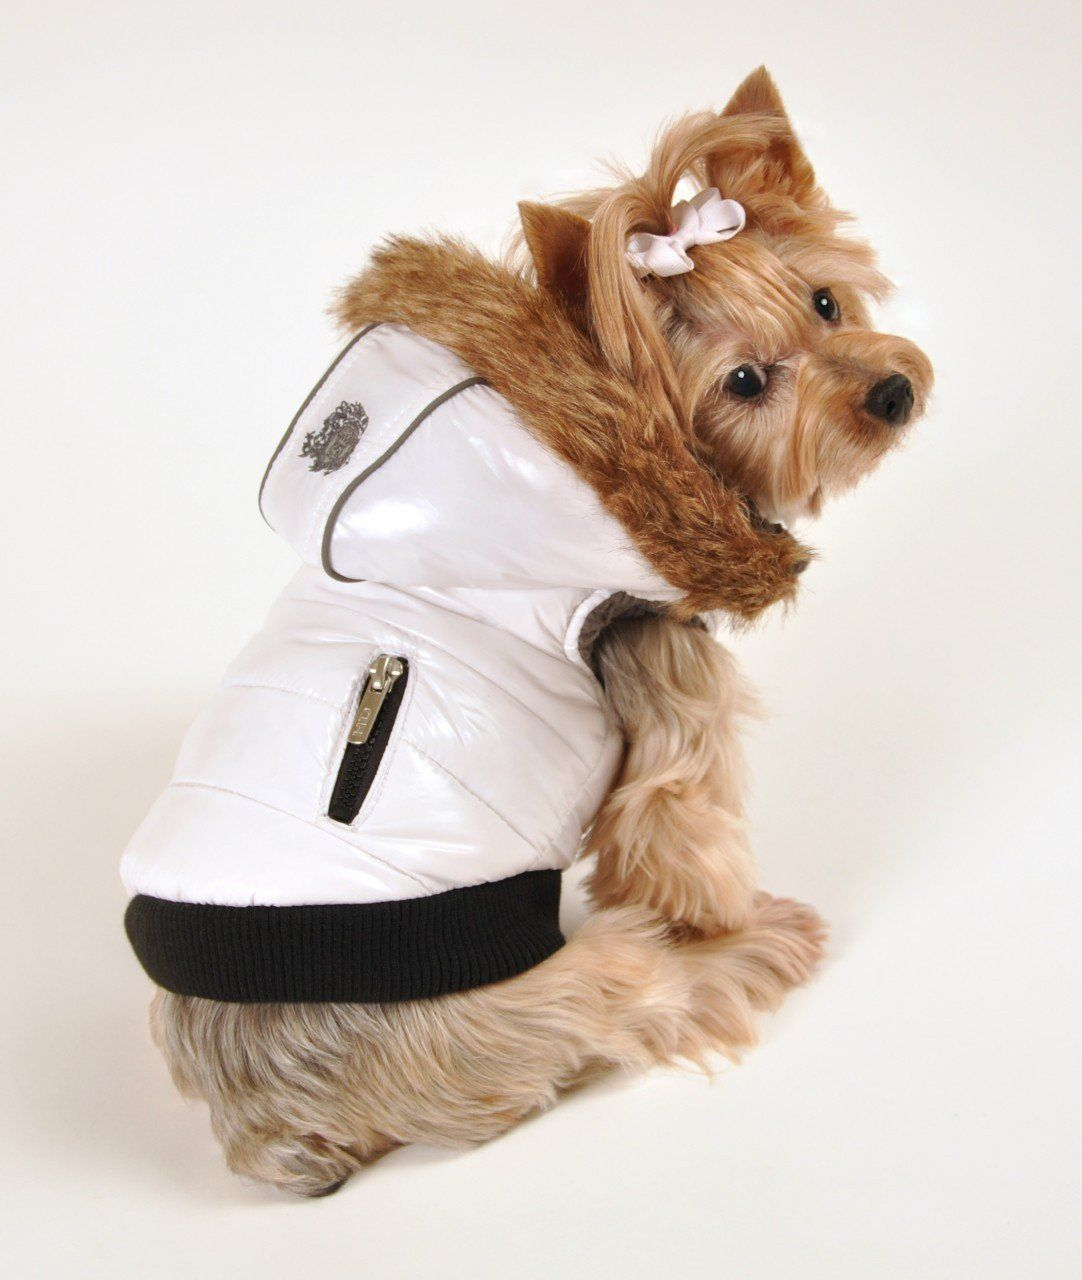 Hospitable Dogs Accessories House dogfoodrepack